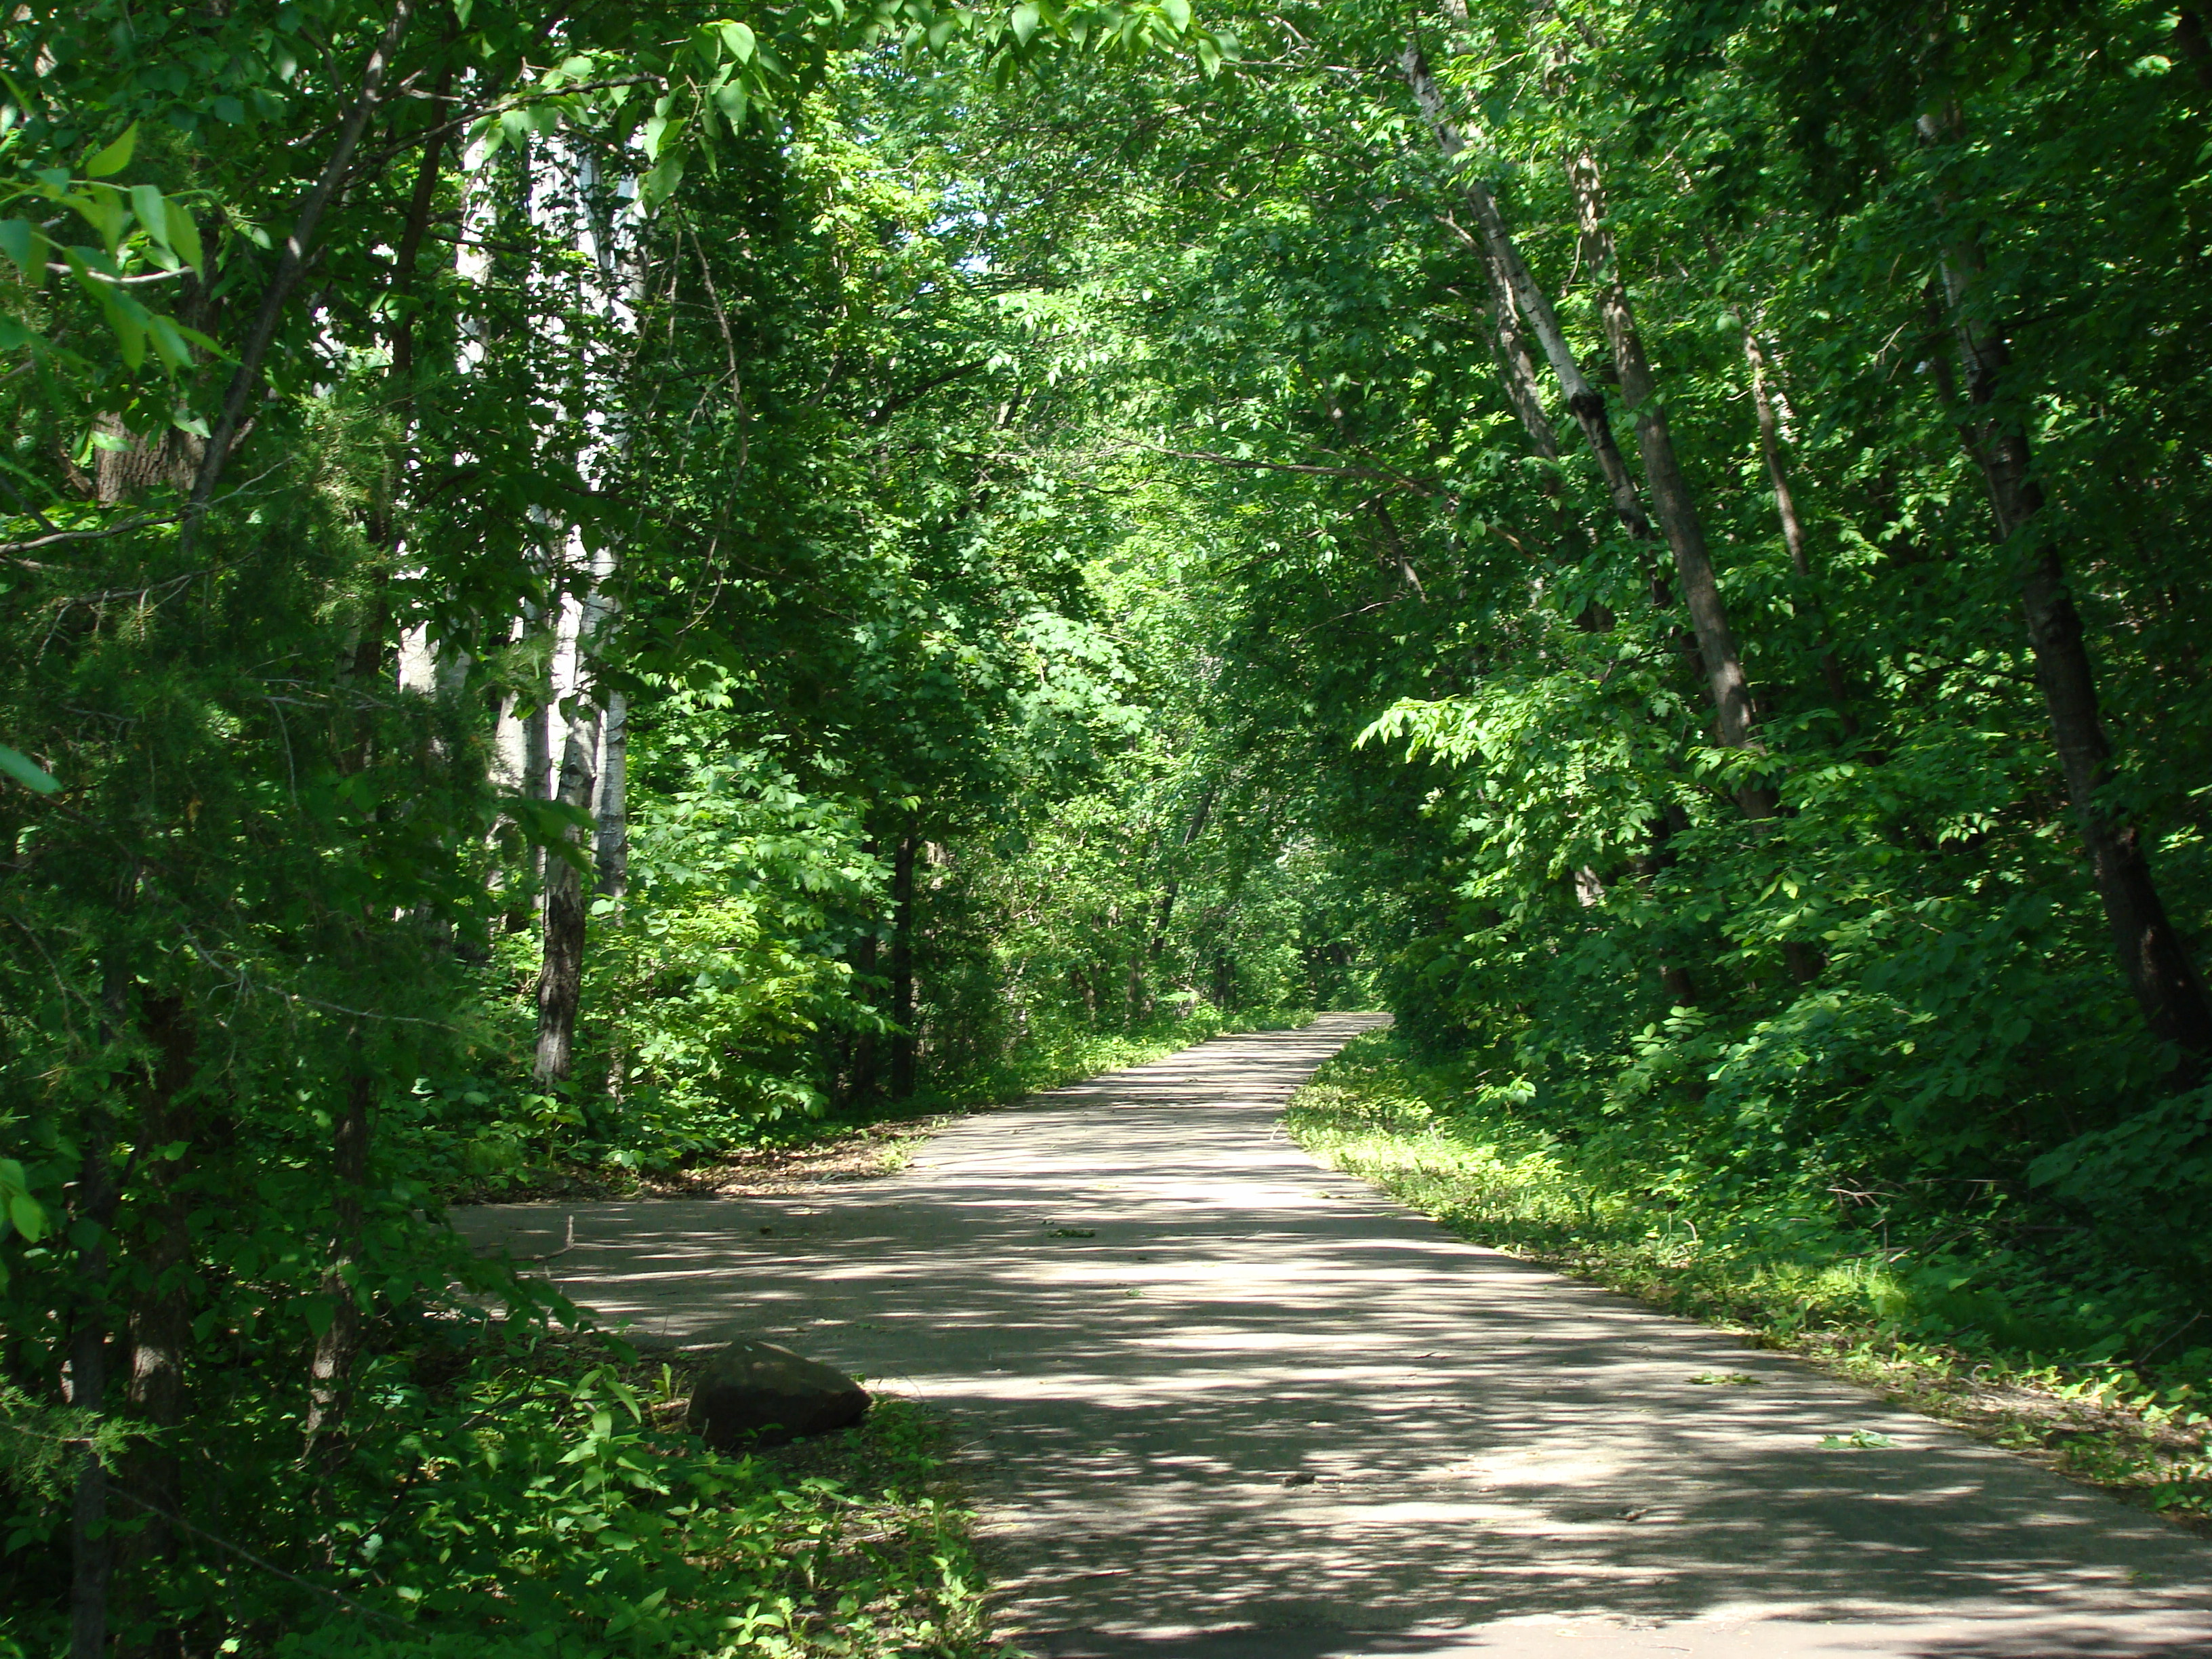 A view of the wooded Red Jacket Trail in Summer.